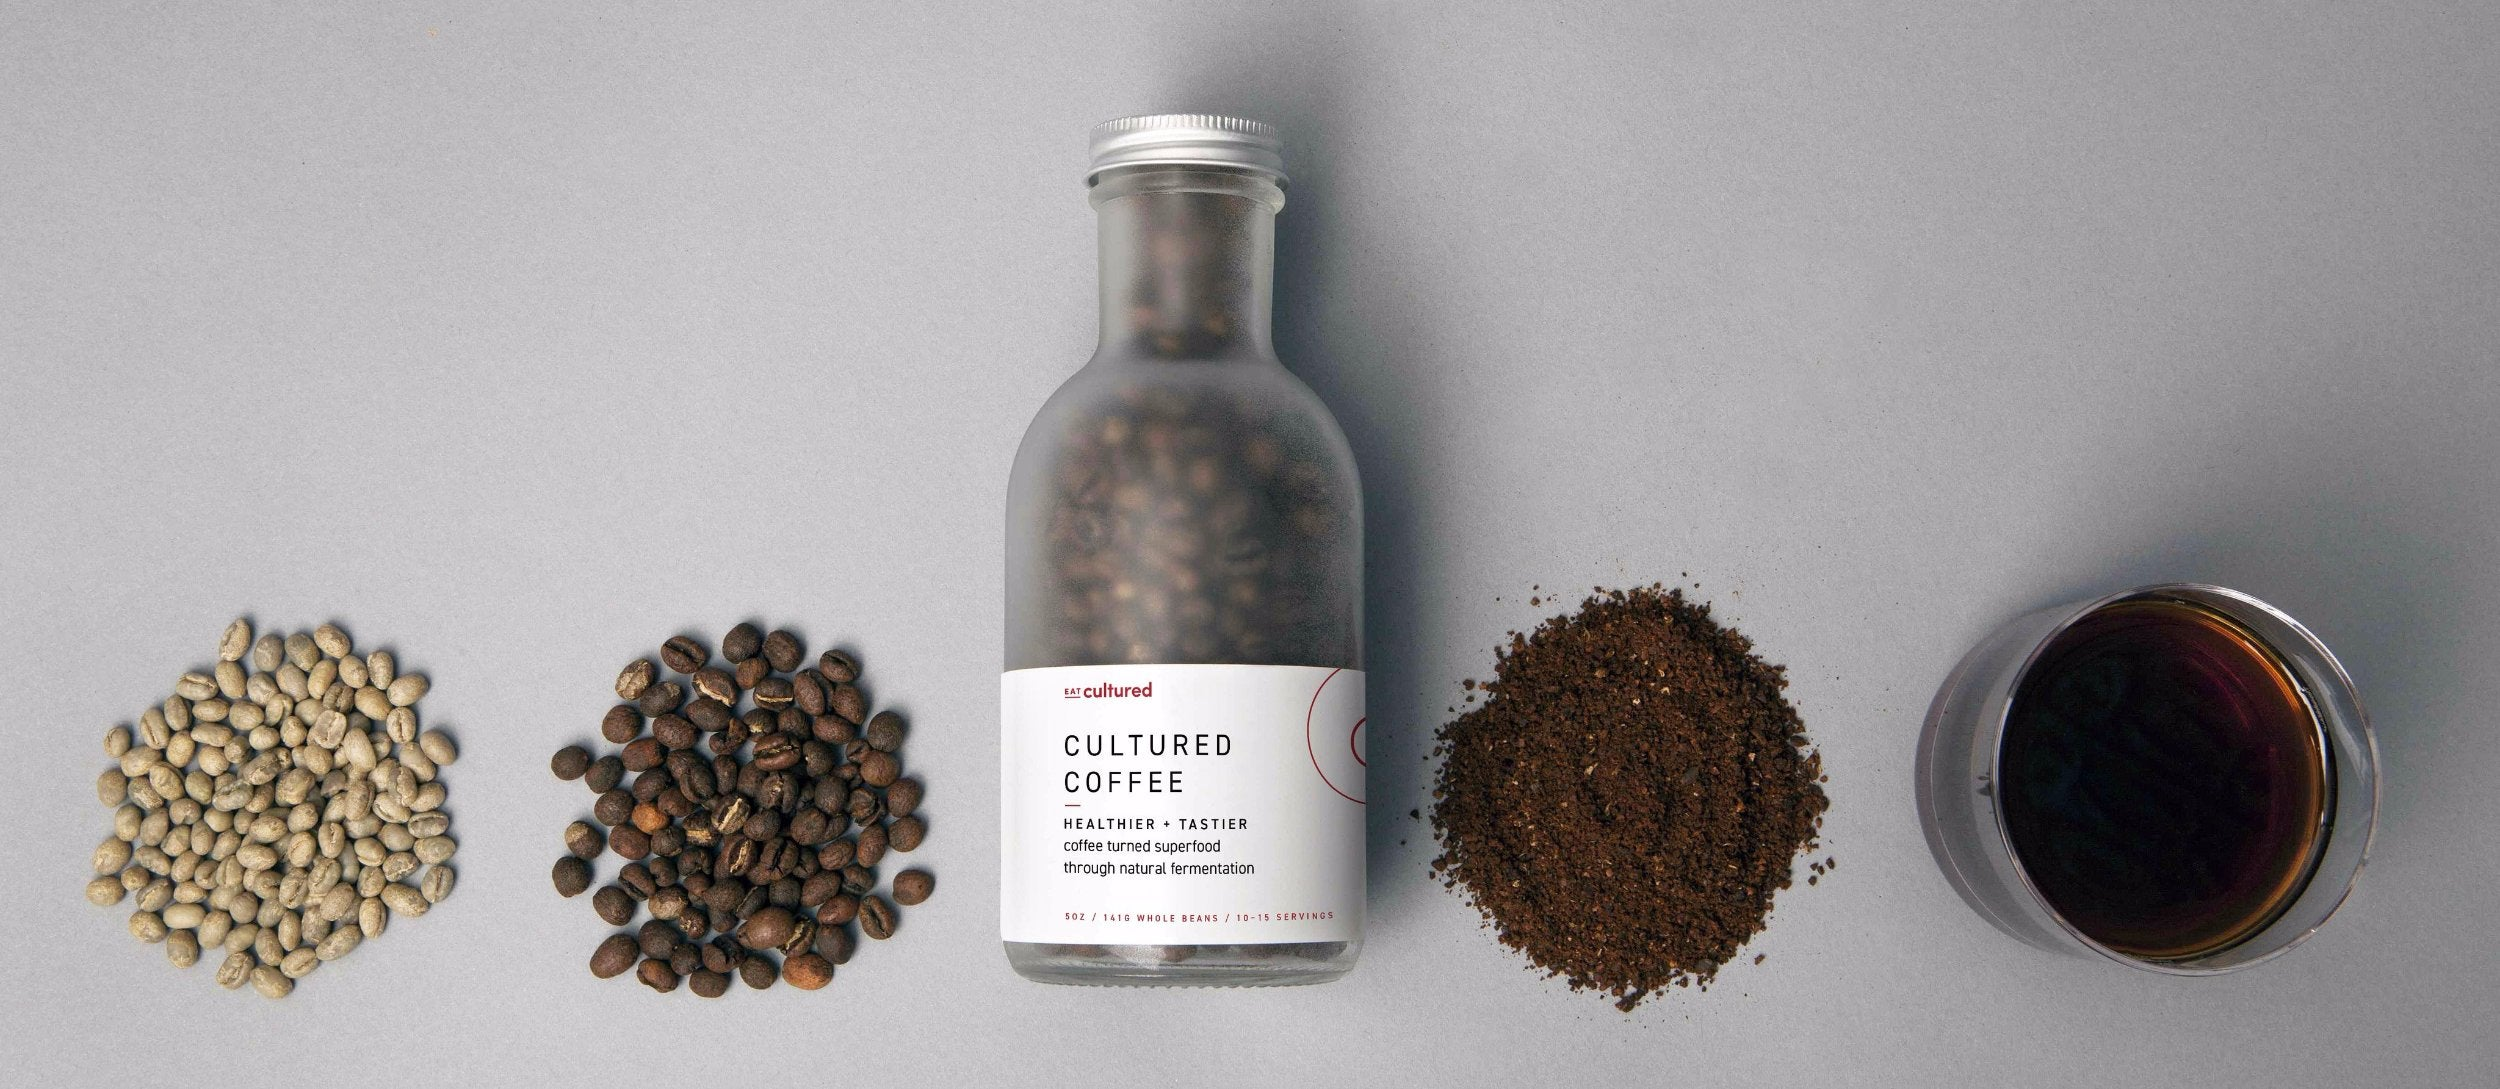 Cultured Coffee Bottle - Whole Beans 5oz